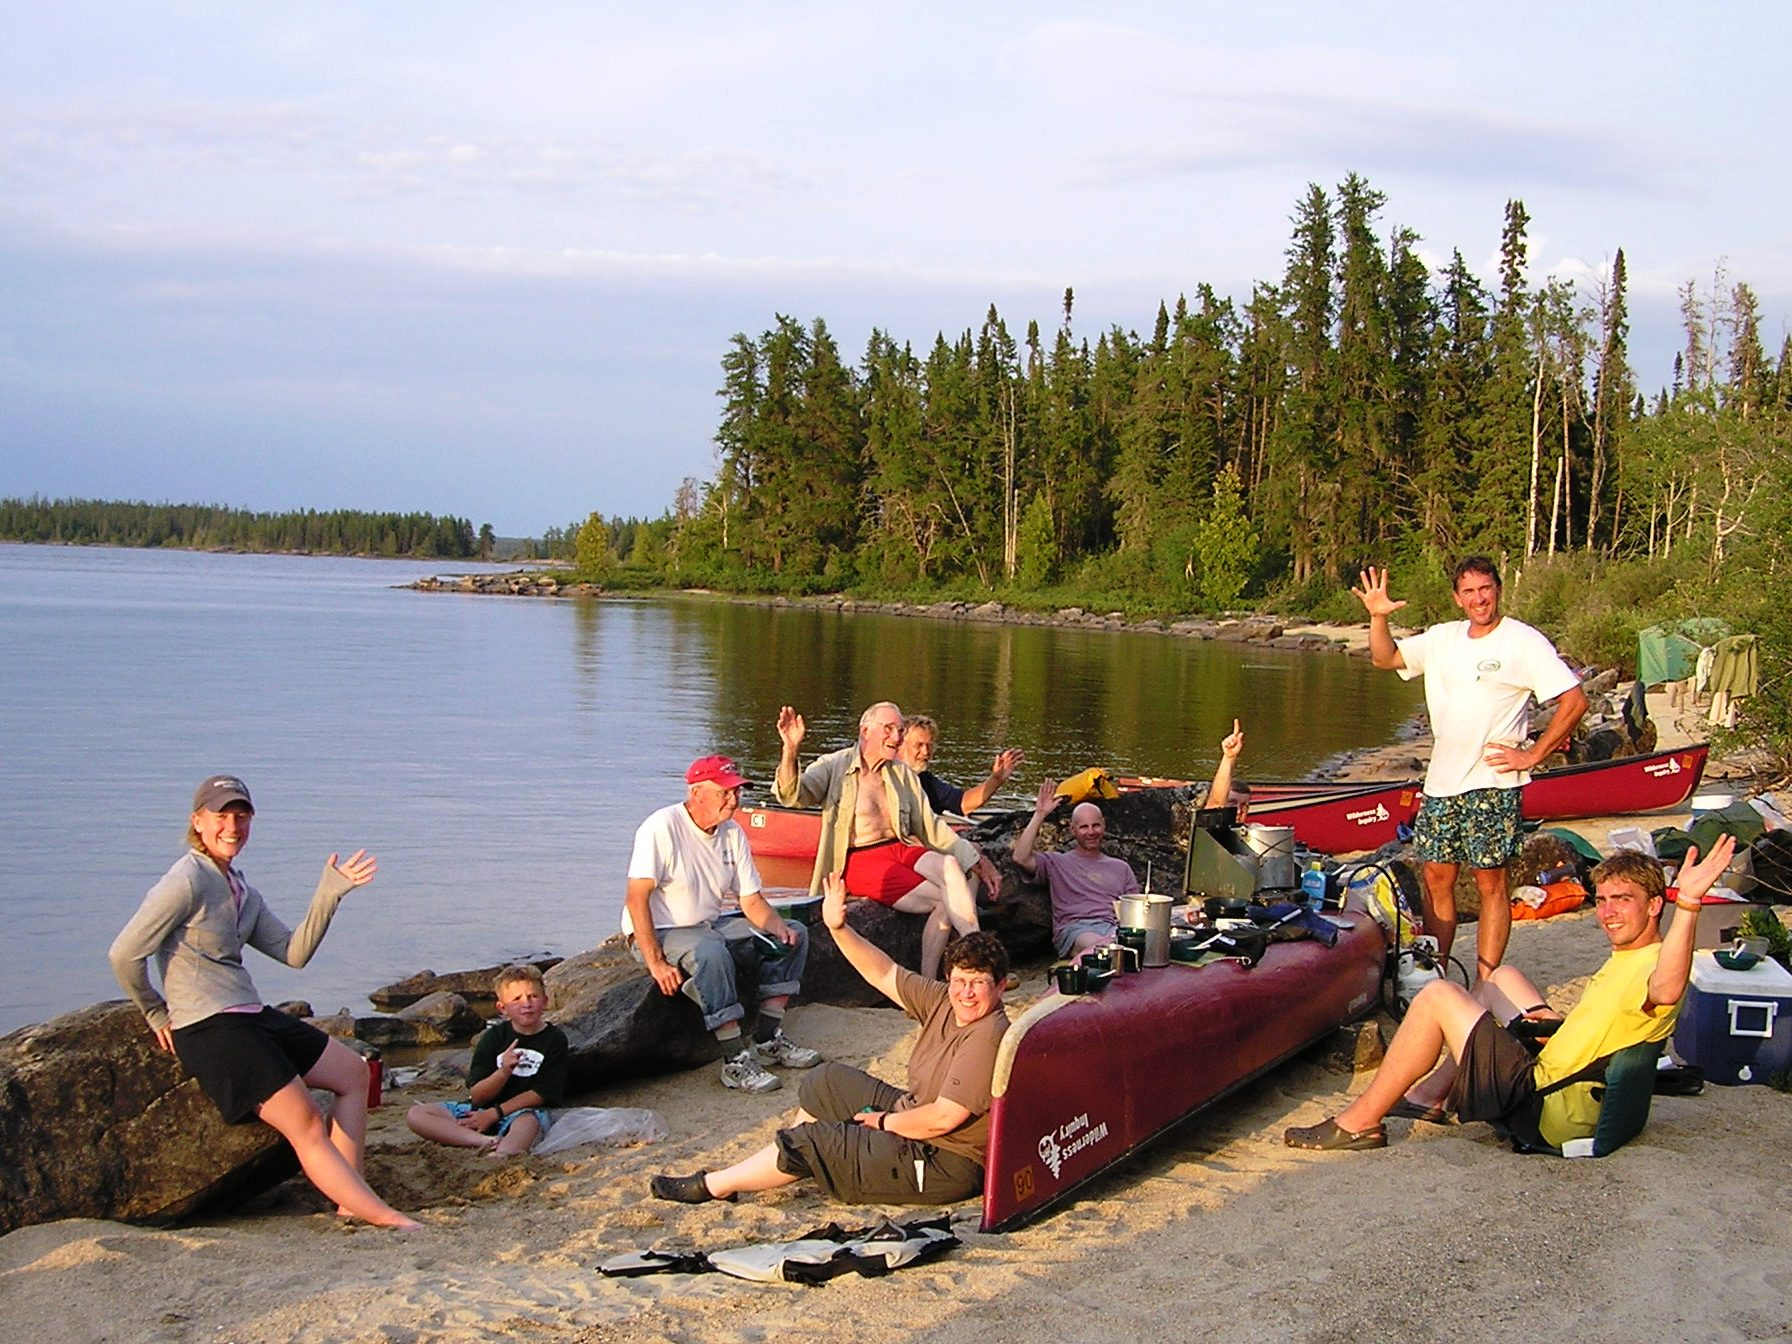 A group waves while eating lunch on a beach with tree-lined shores on a calm lake in the background.